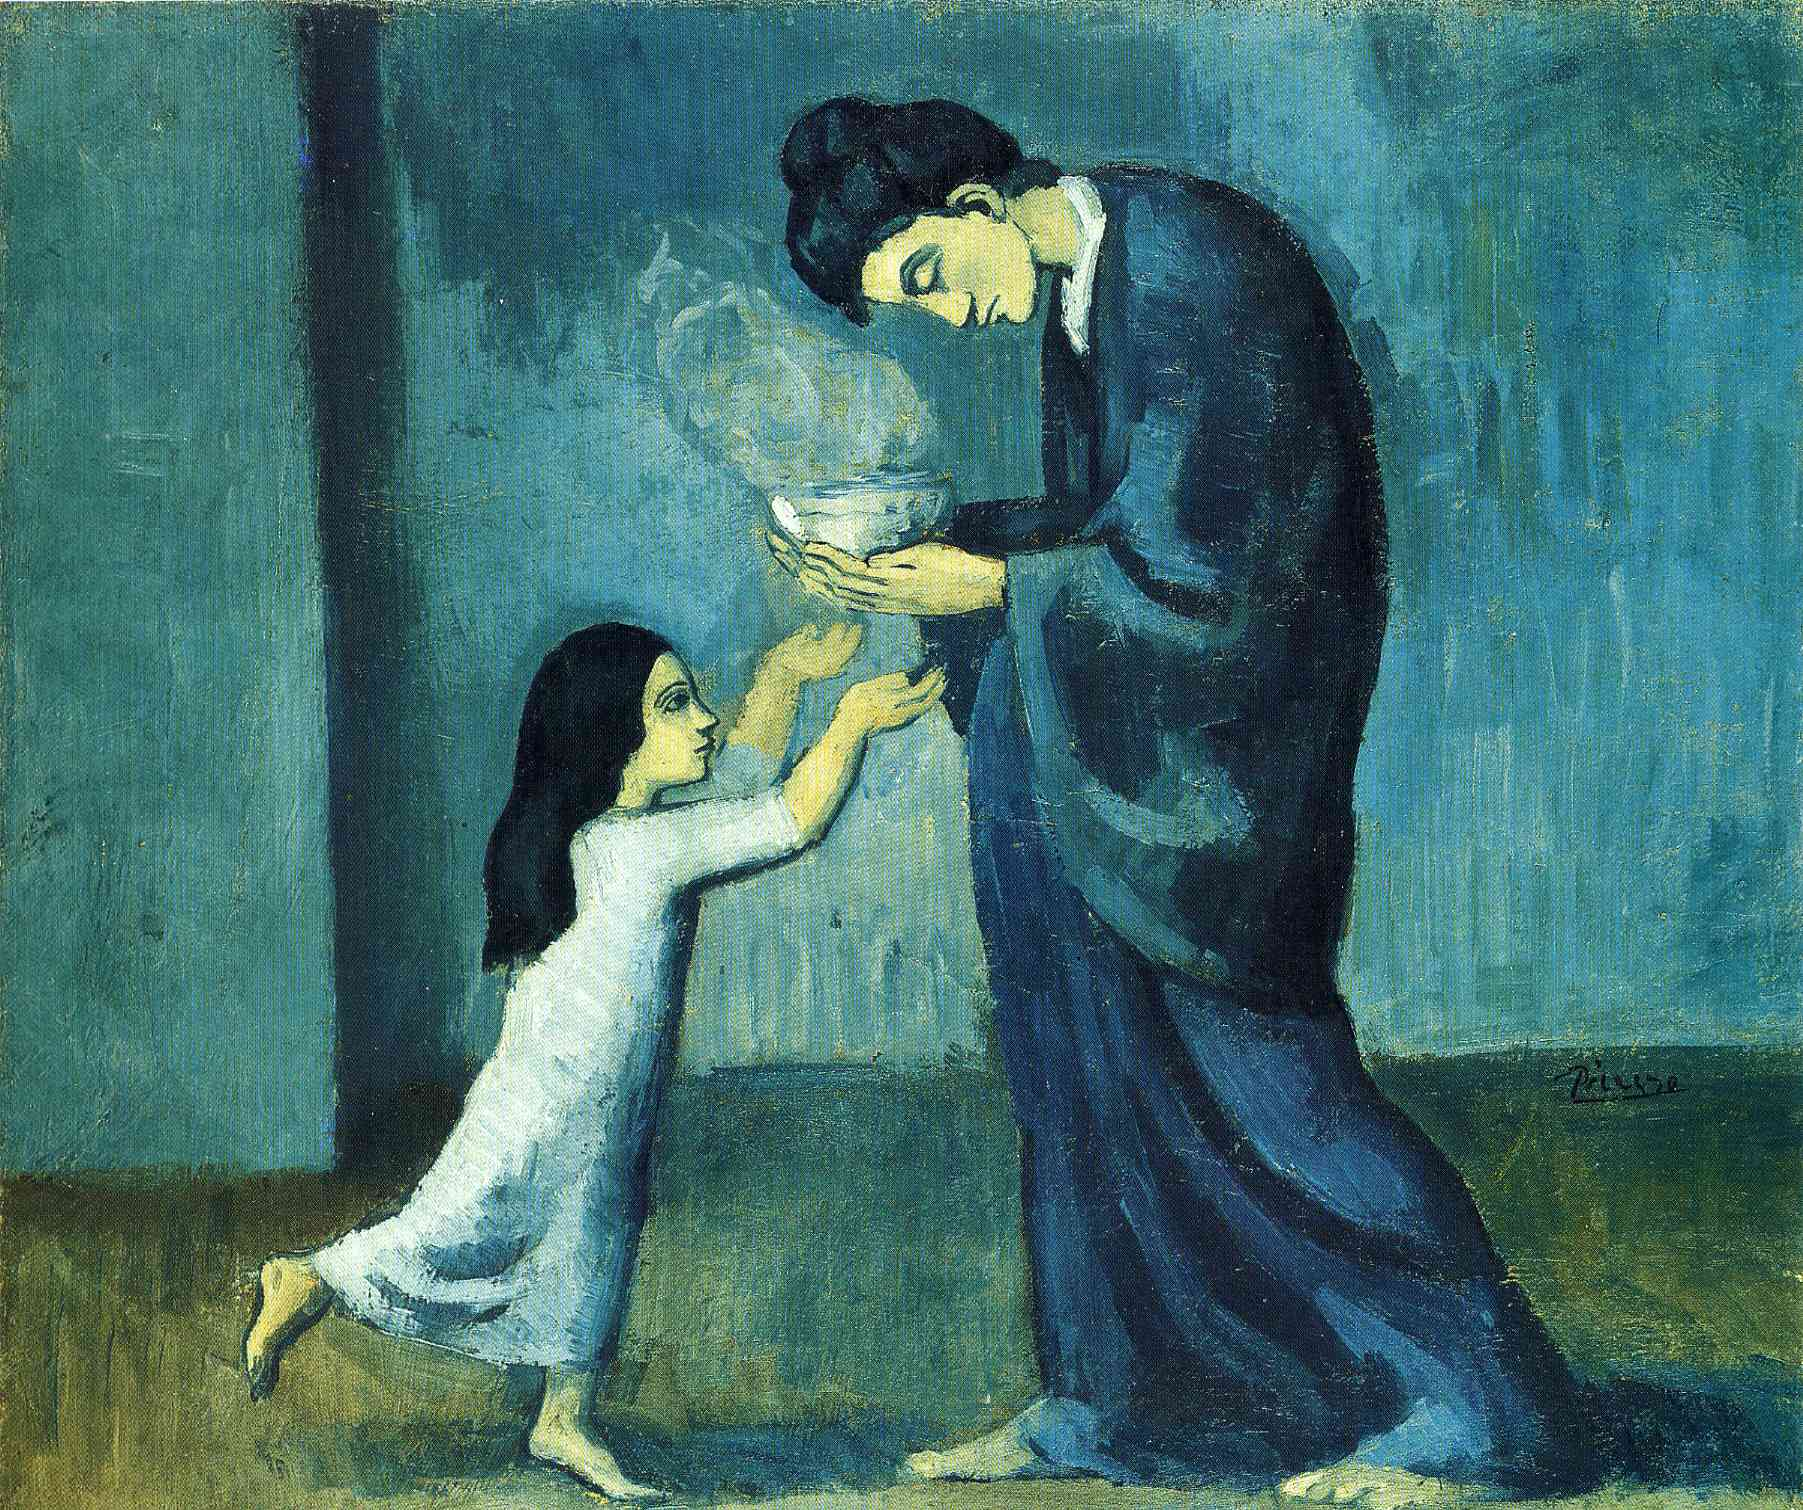 image: pablo picasso - wikipaintings, PD-US, en.wikipedia.org/w/index.php?curid=40528028